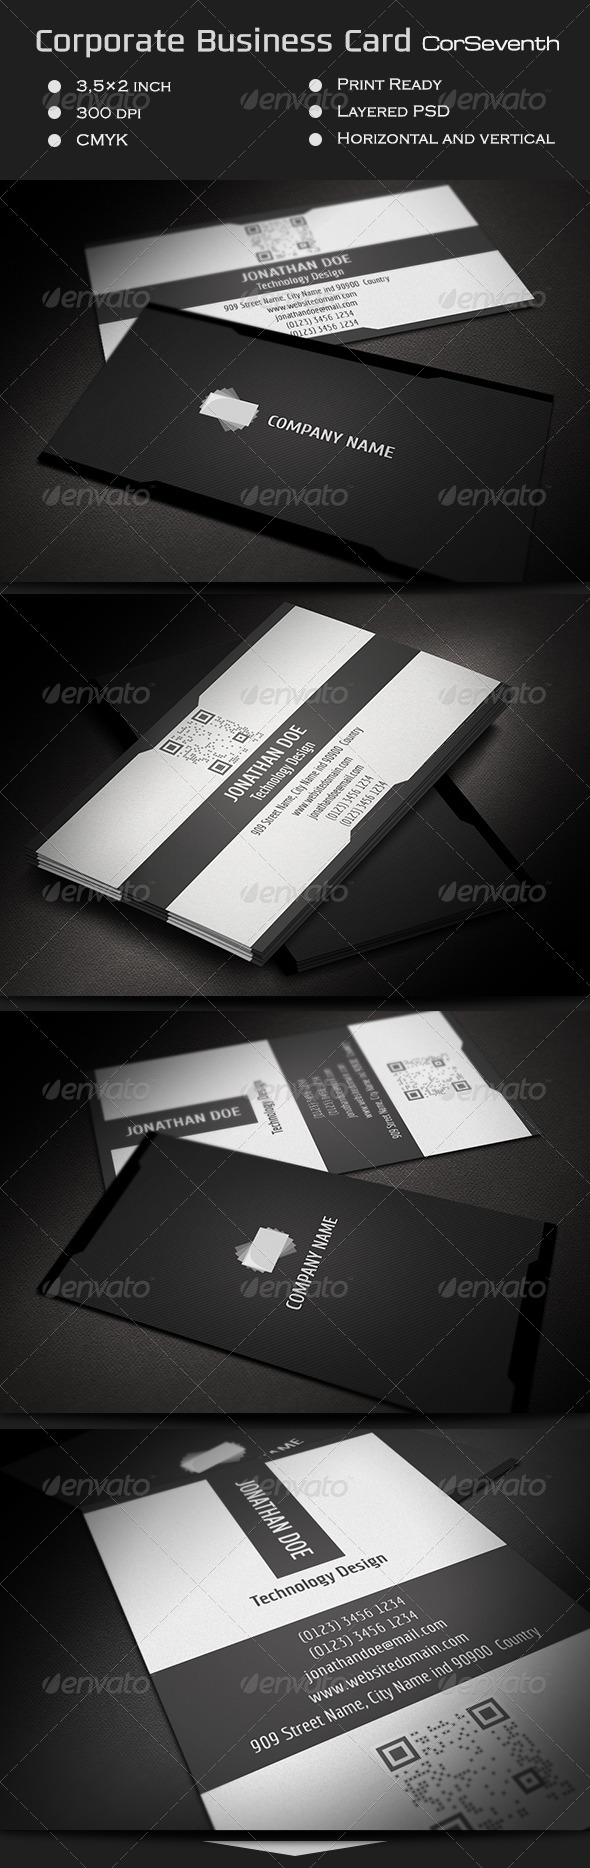 GraphicRiver Corporate Business Card CorSeventh 7195811